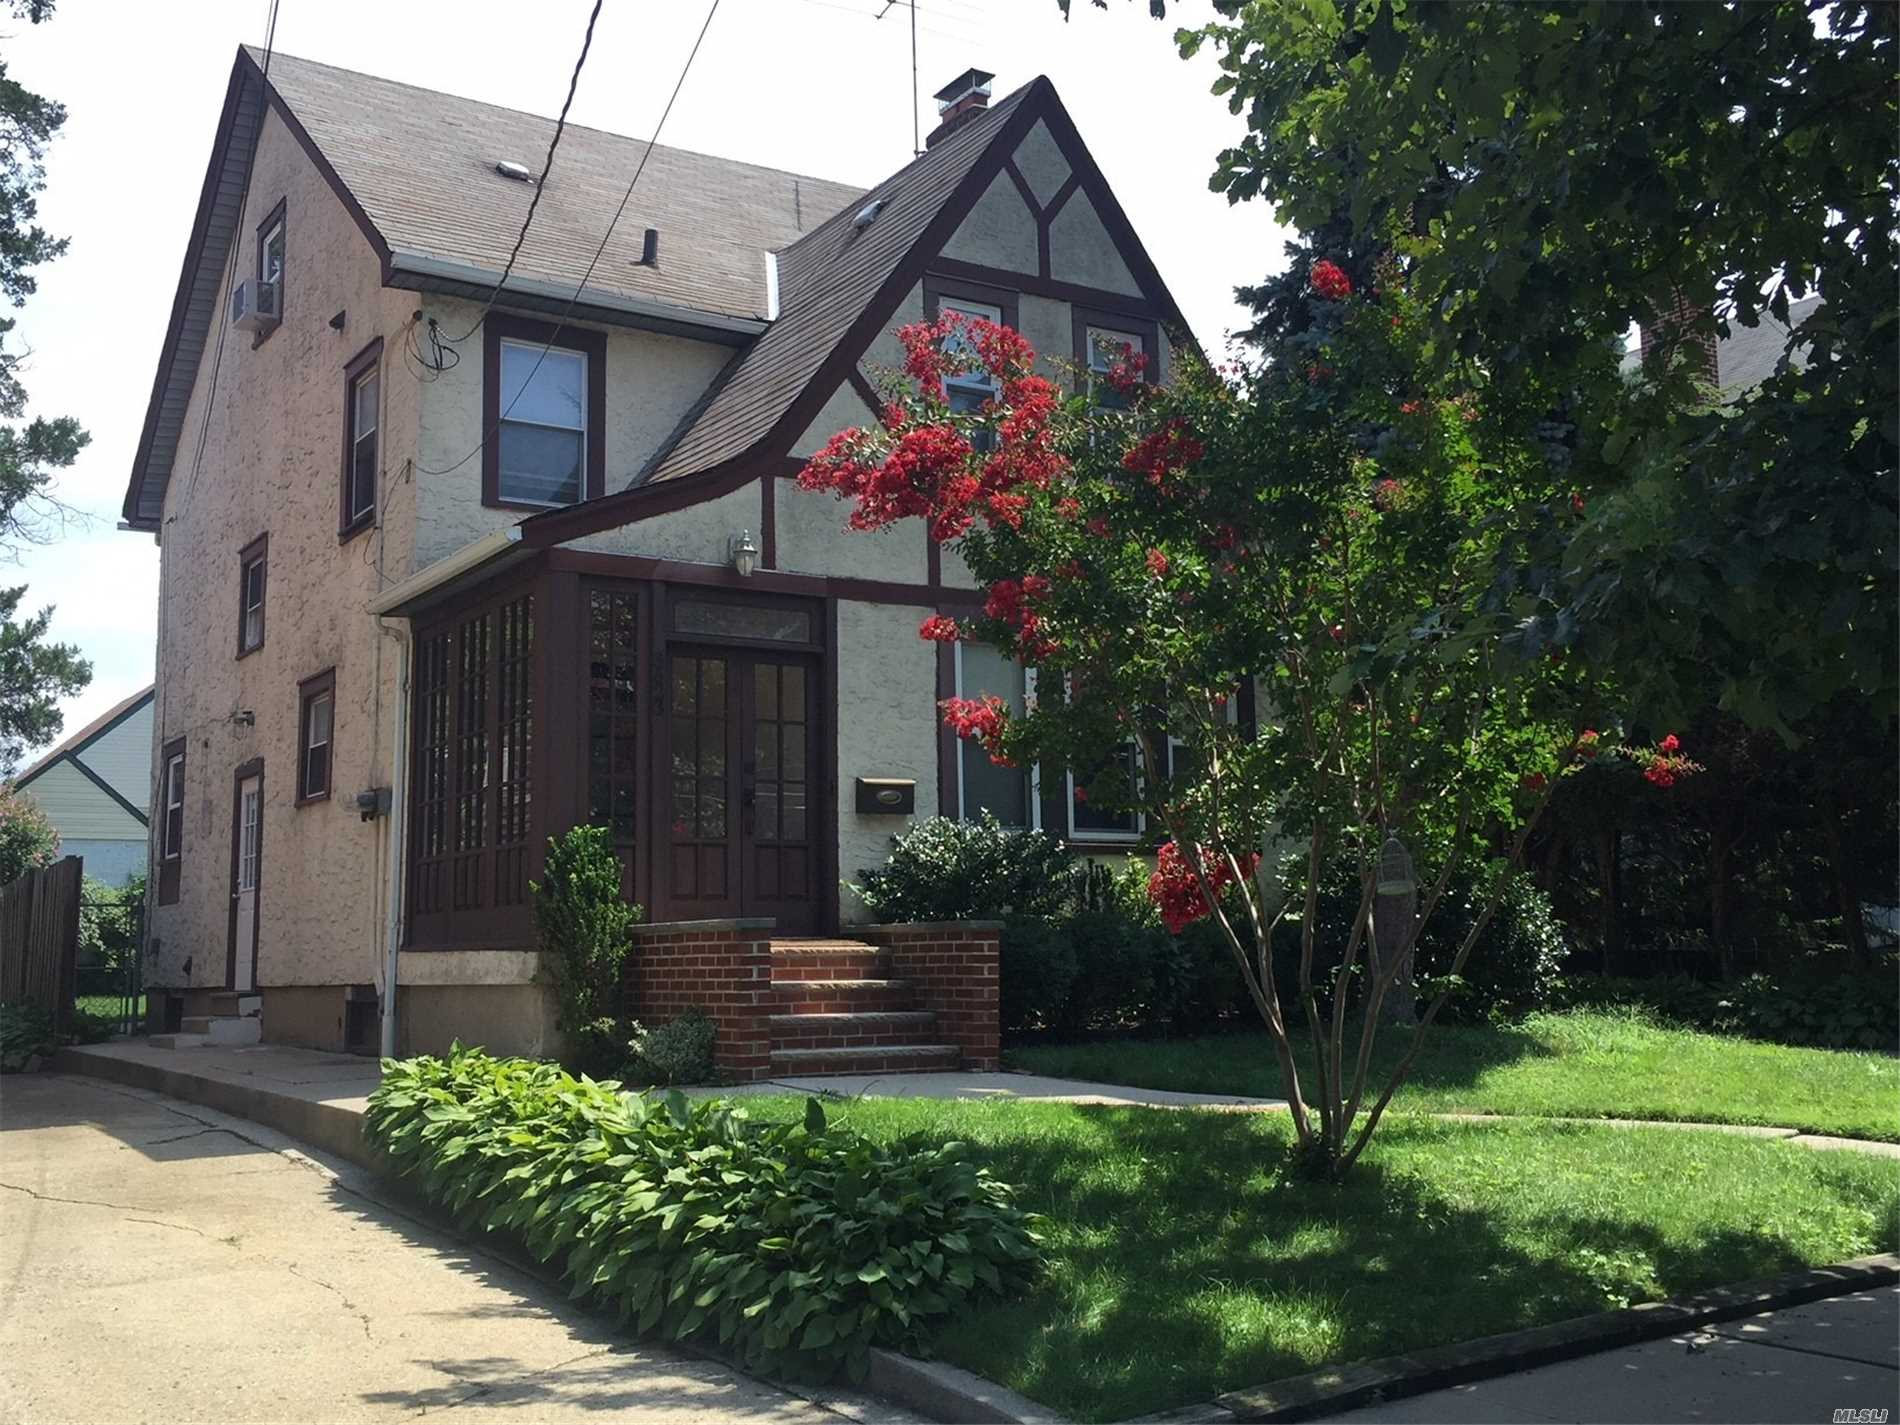 First Floor Apartment In 2-Family Tudor. Separate Entrance. W/D In Unit. Heat And Water Included. Quiet Street With Ample Parking. Convenient To Shopping And Transportation. Driveway Parking And Garage Storage Available.